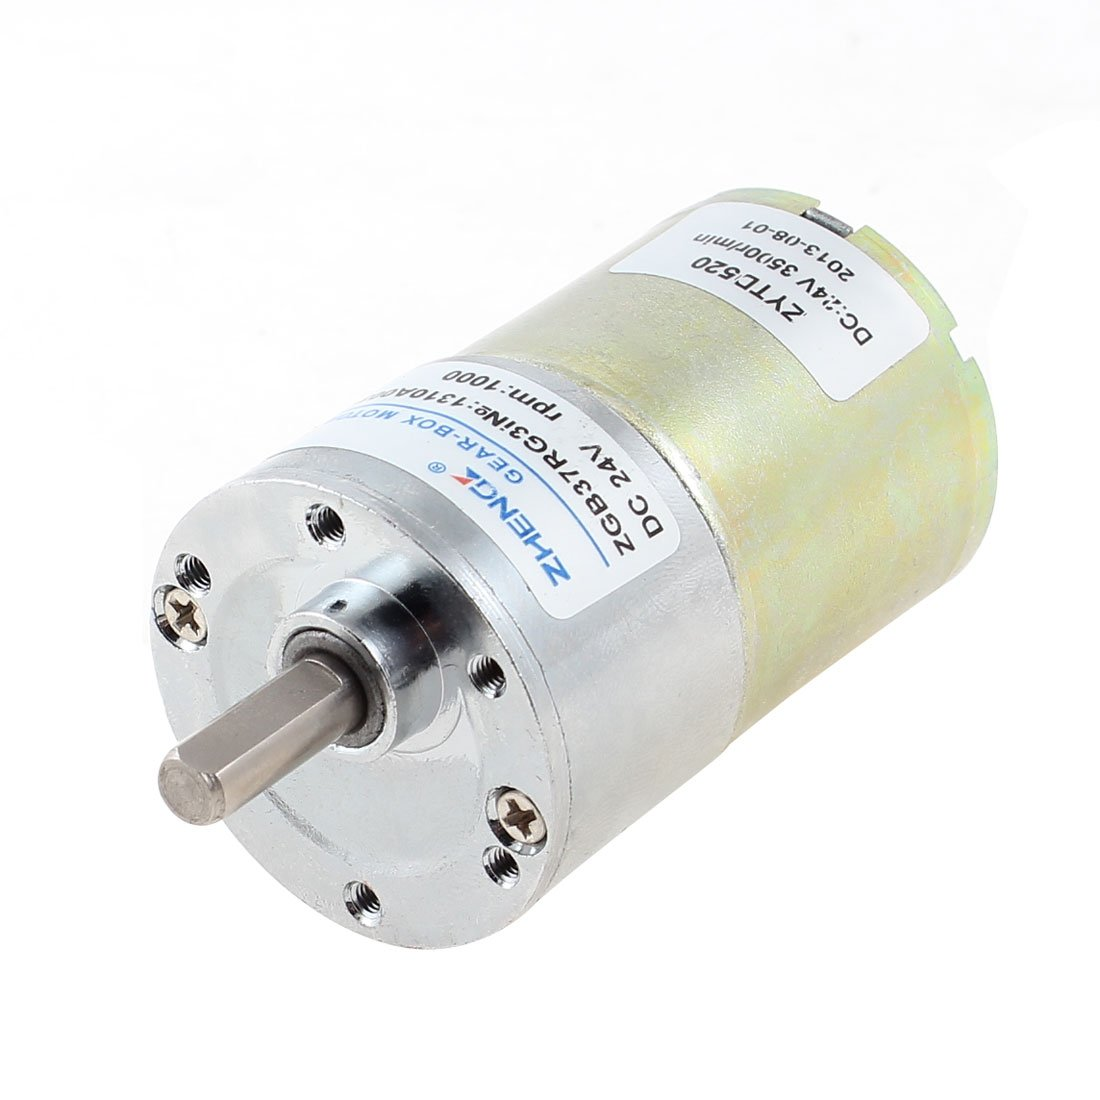 DC 24V 1000 RPM Metal Permanent Speed Reducing Geared Box Motor